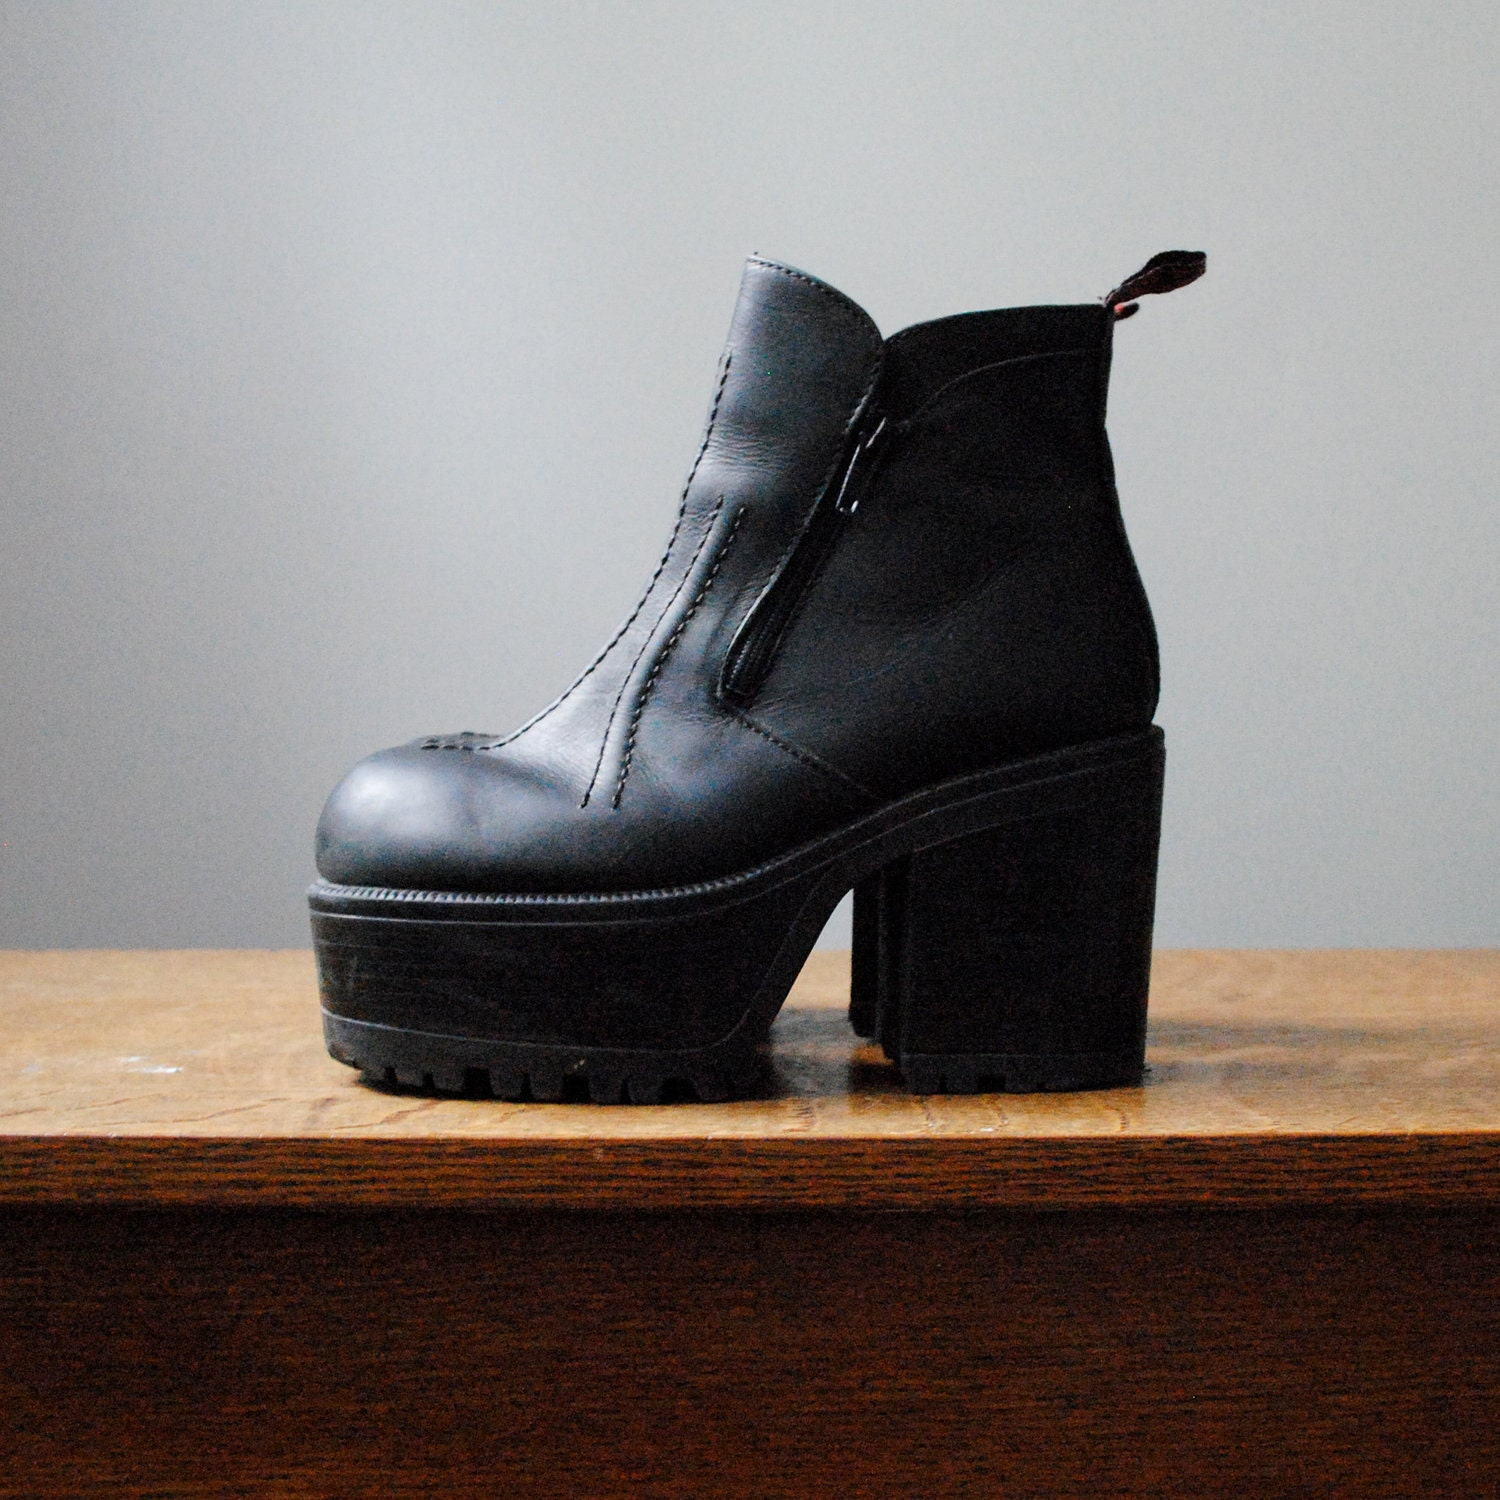 vintage platform boots in black leather with by maisondhibou